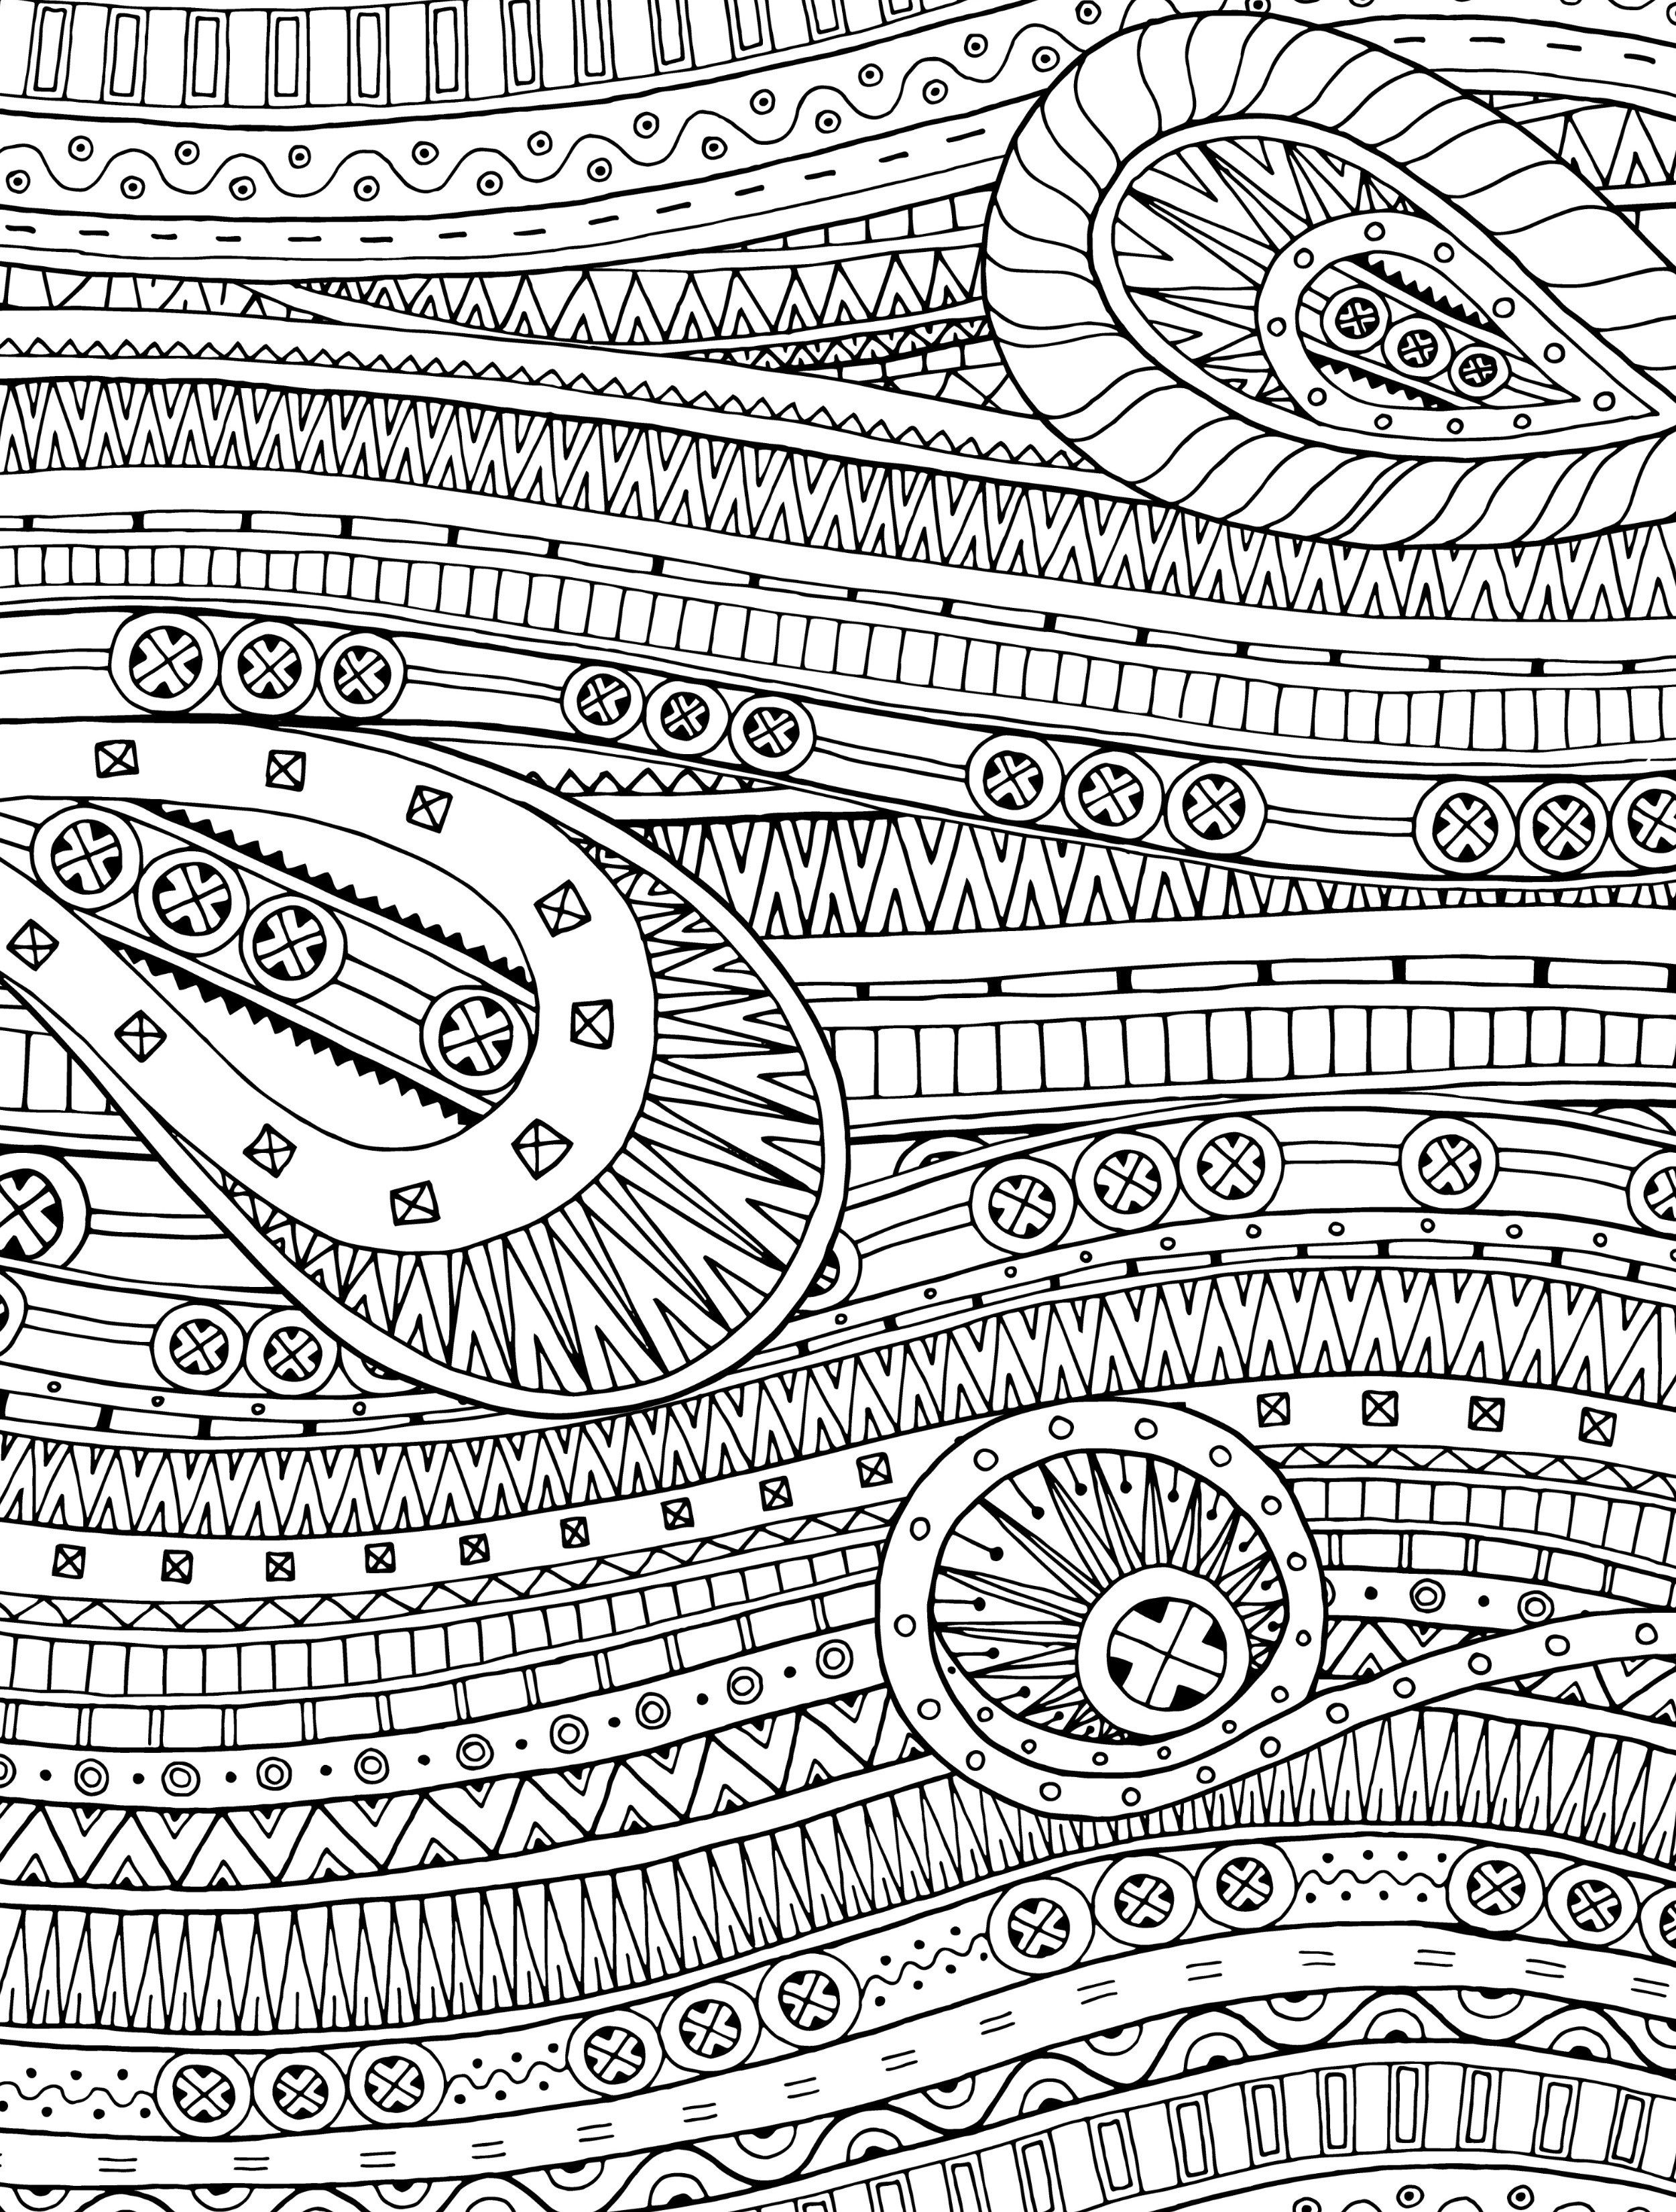 Beau 15 CRAZY Busy Coloring Pages For Adults